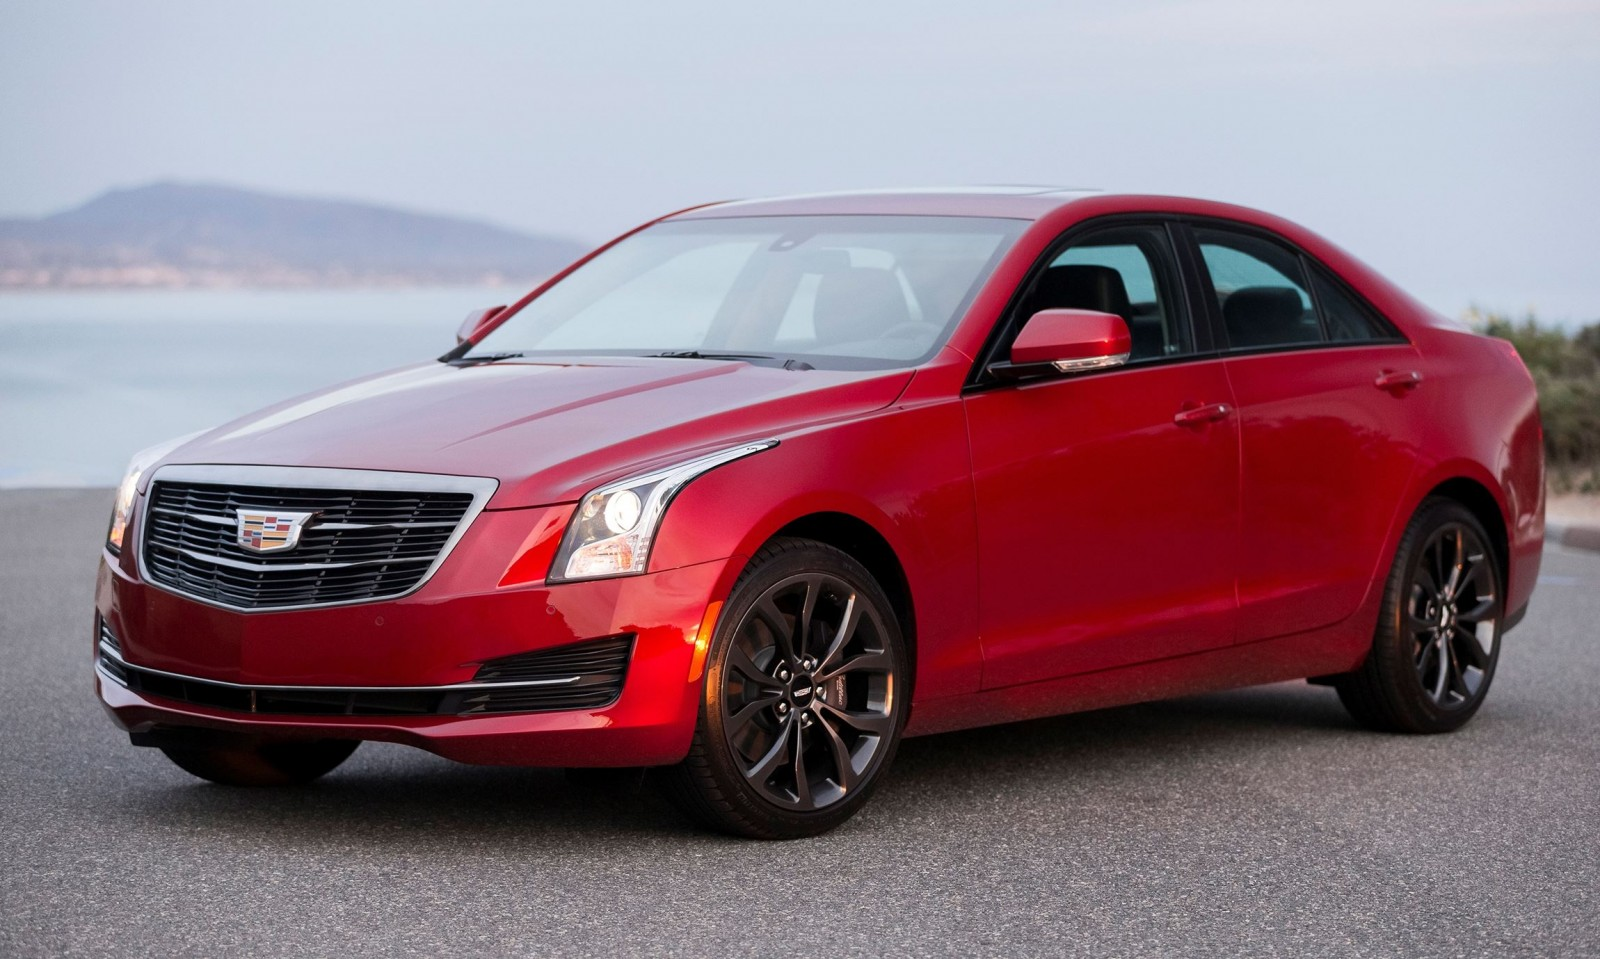 2016 cadillac ats and cts score much needed black packs car revs. Black Bedroom Furniture Sets. Home Design Ideas